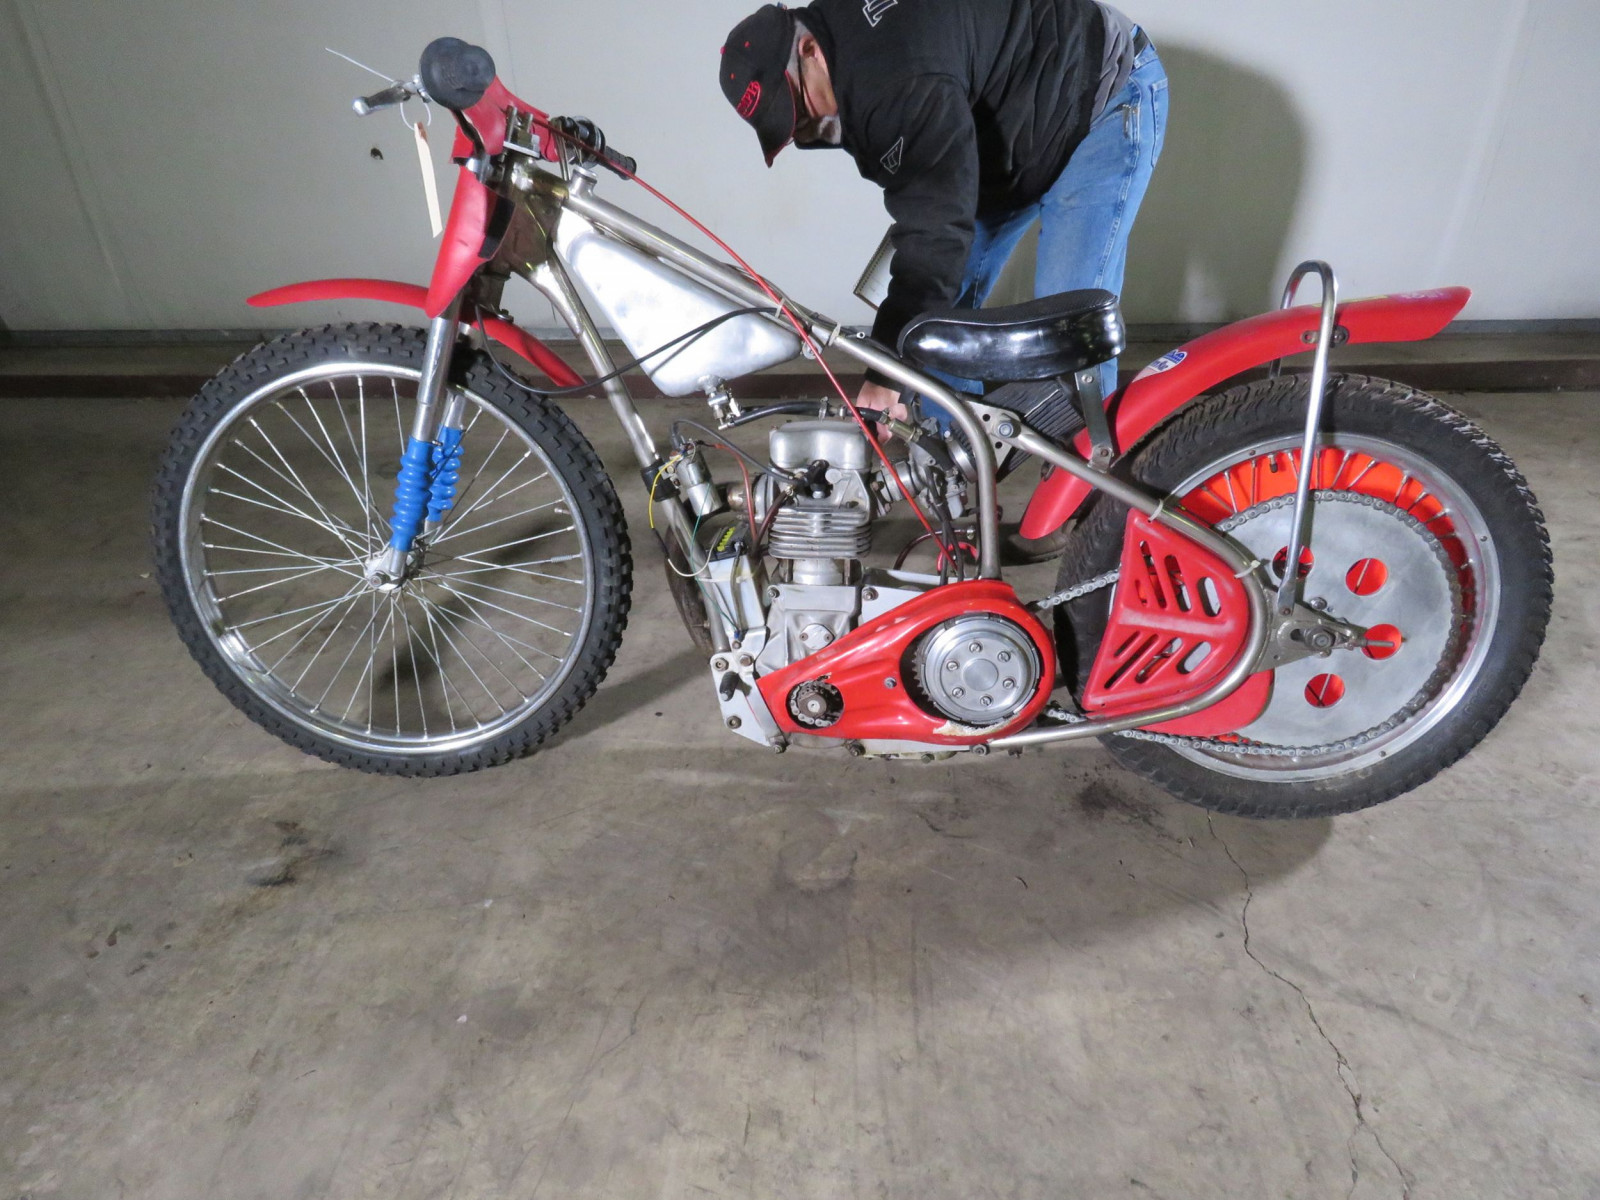 Speedway Racer Motorcycle - Image 10